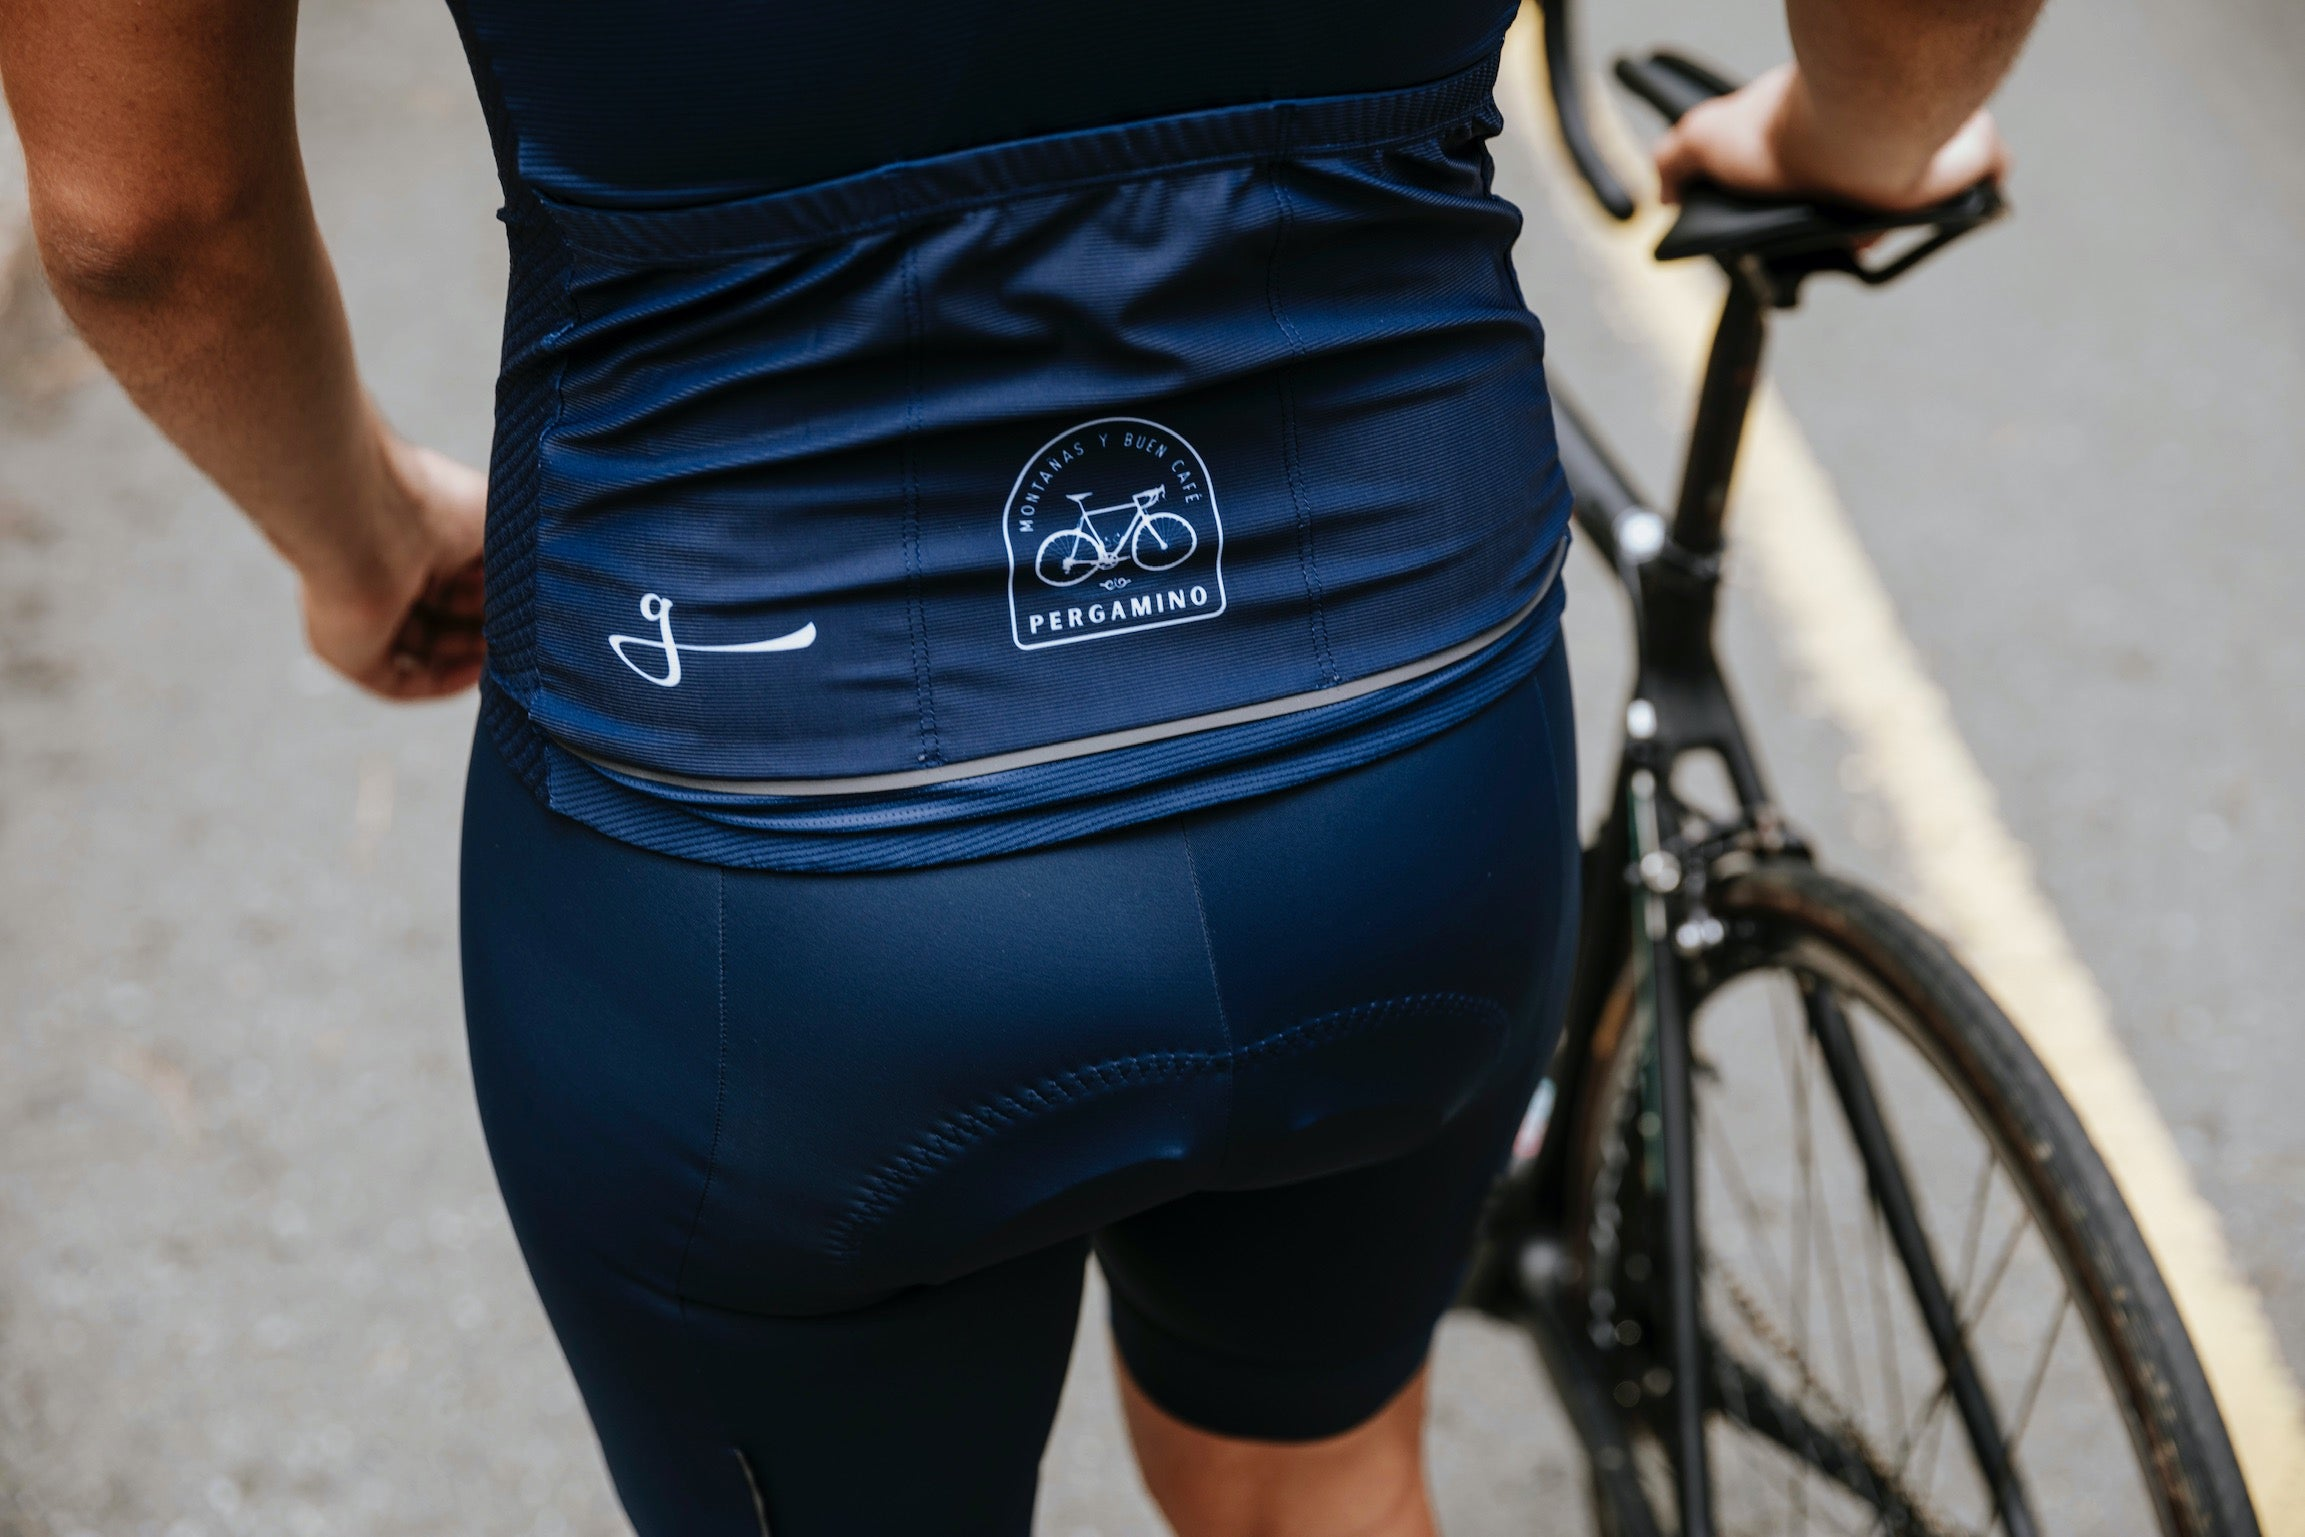 PERGMINO Cycling Bib Shorts by Givelo